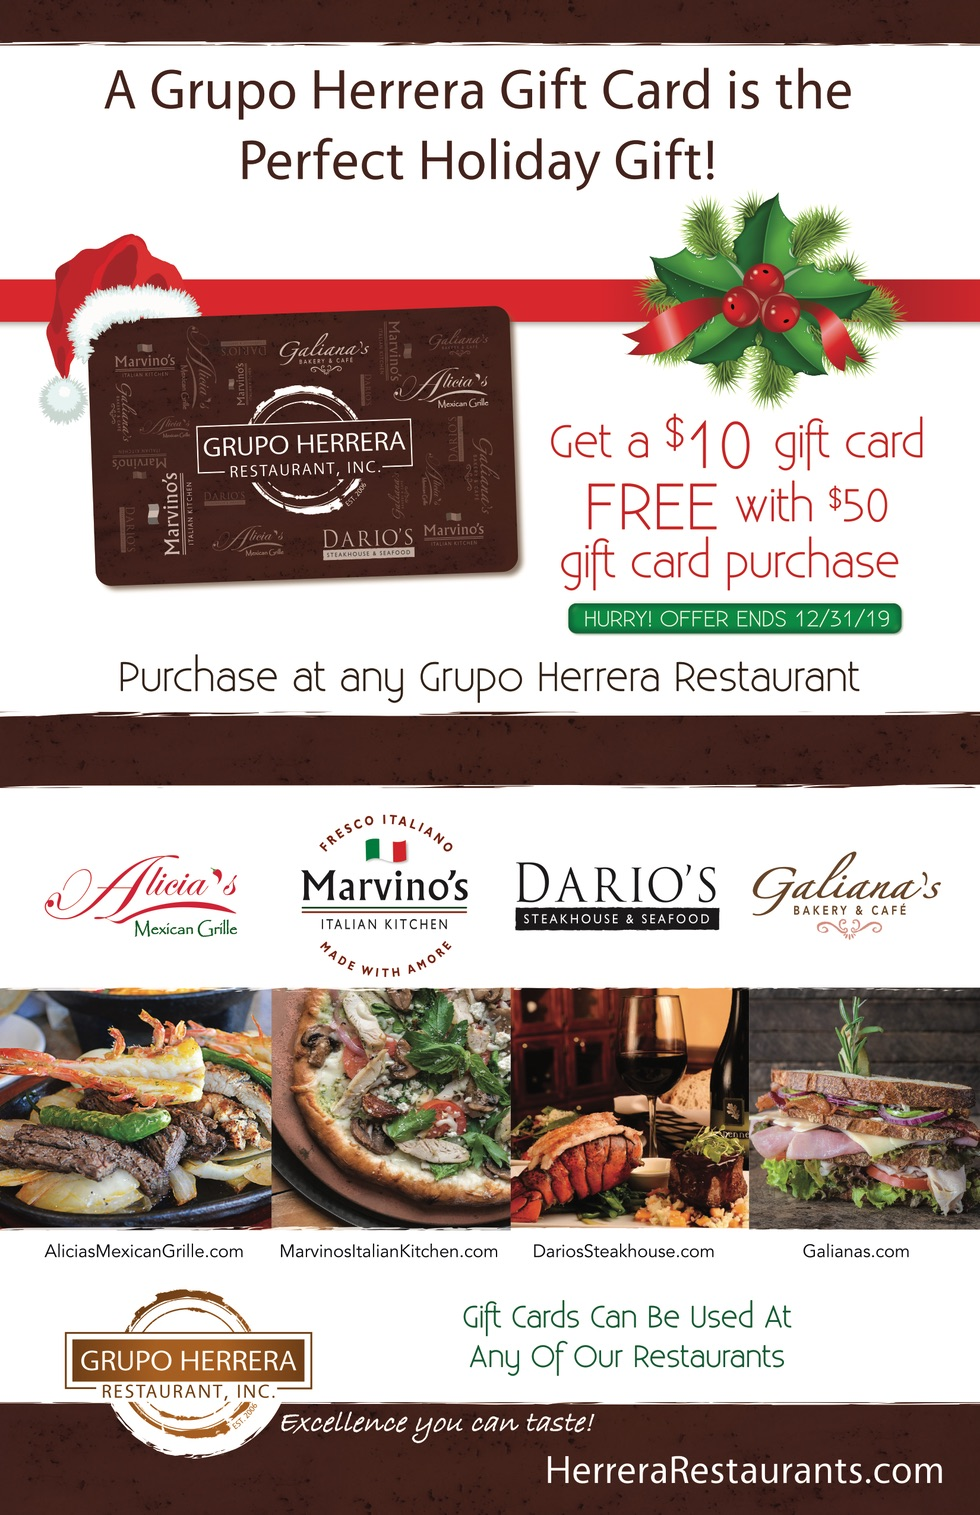 A Grupo Herrera Gift Card is the Perfect Holiday Gift!